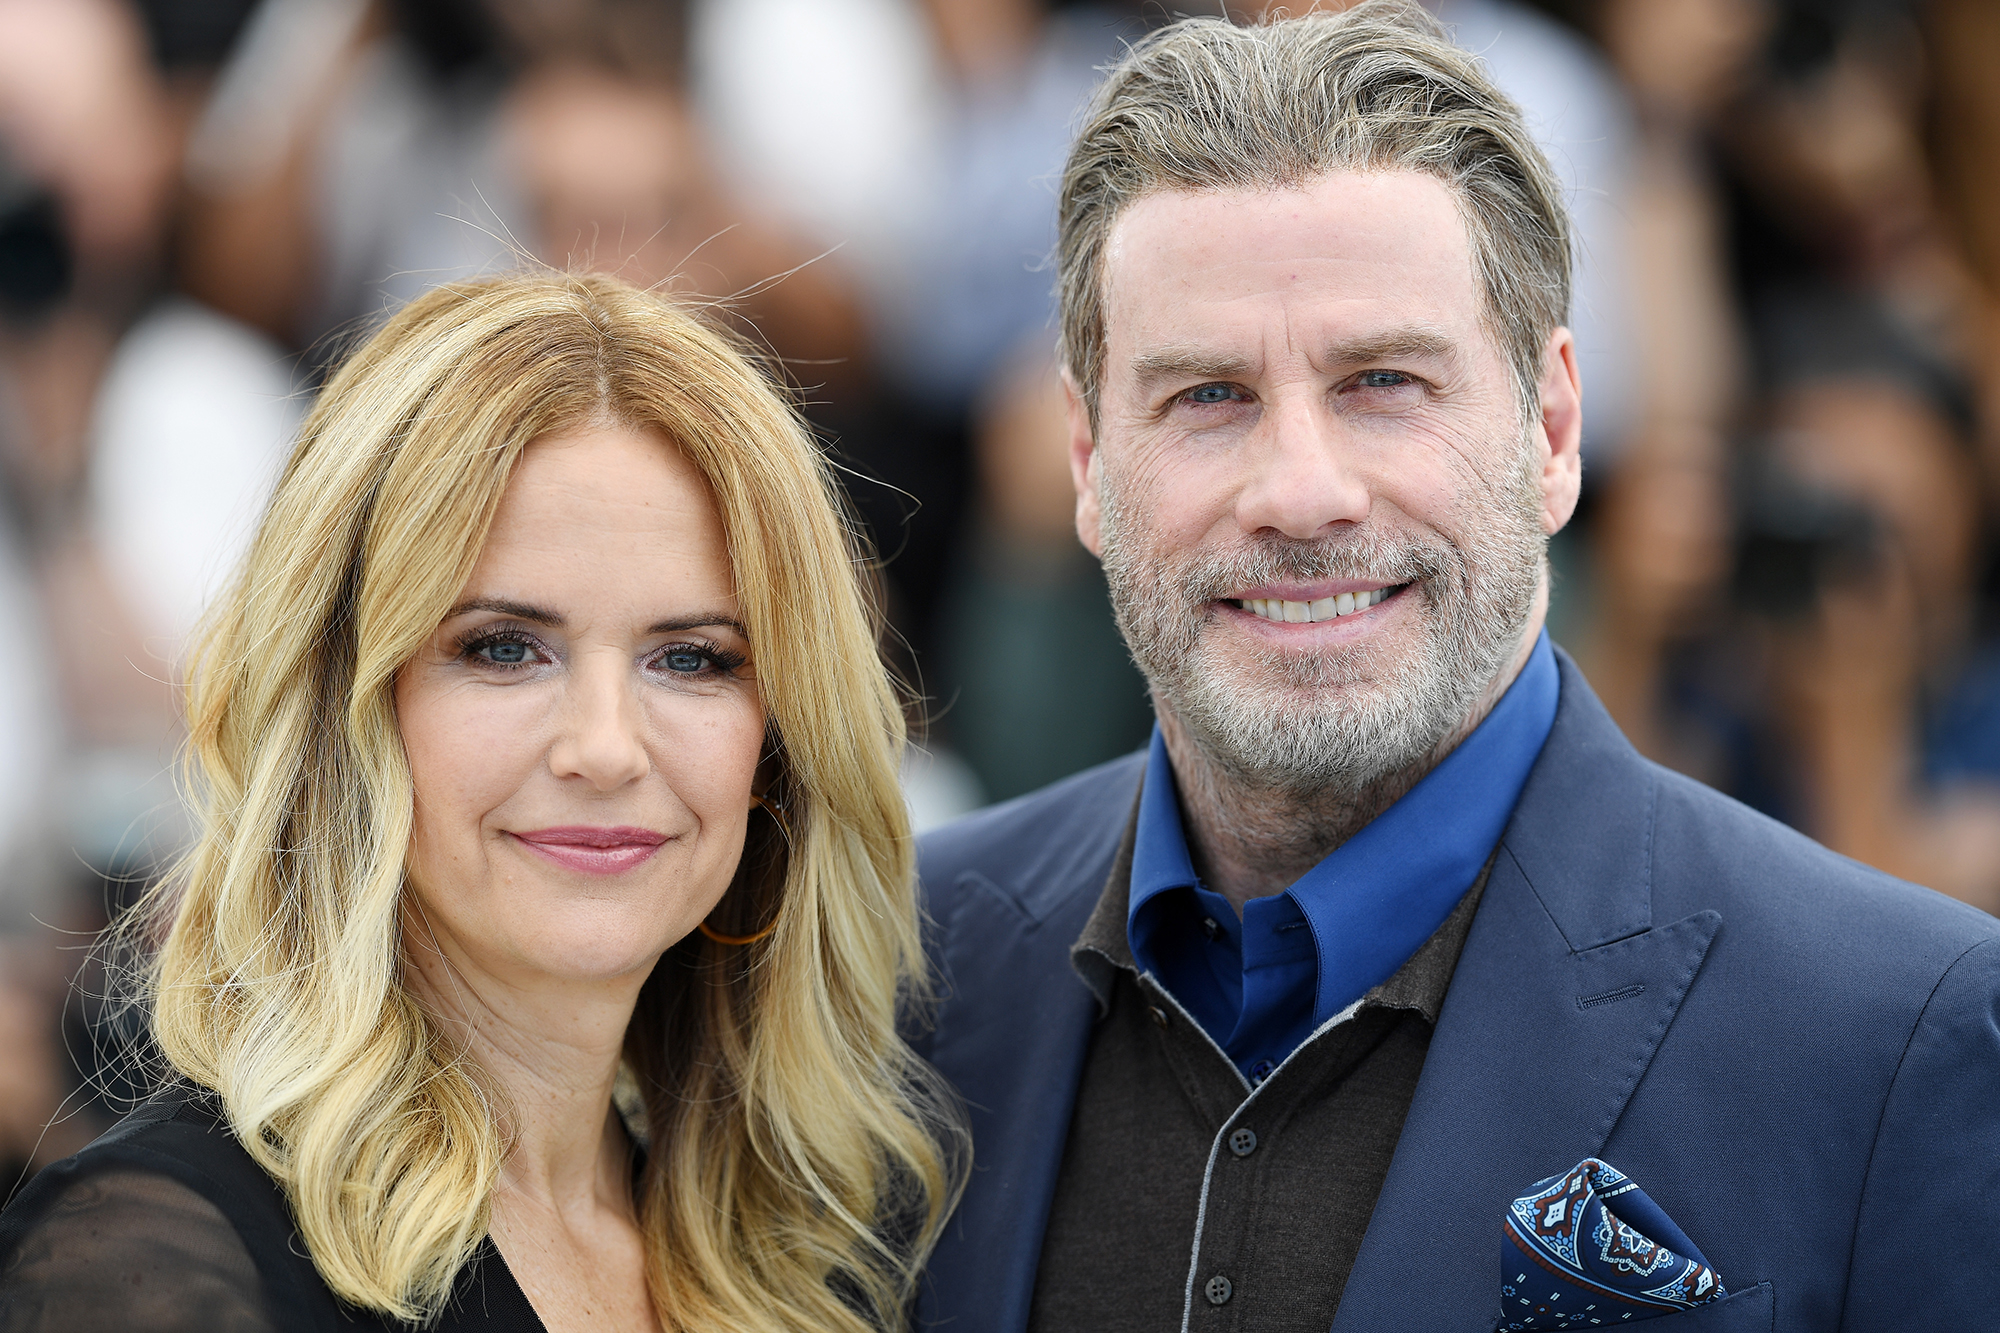 John Travolta pays Mother's Day tribute to Kelly Preston